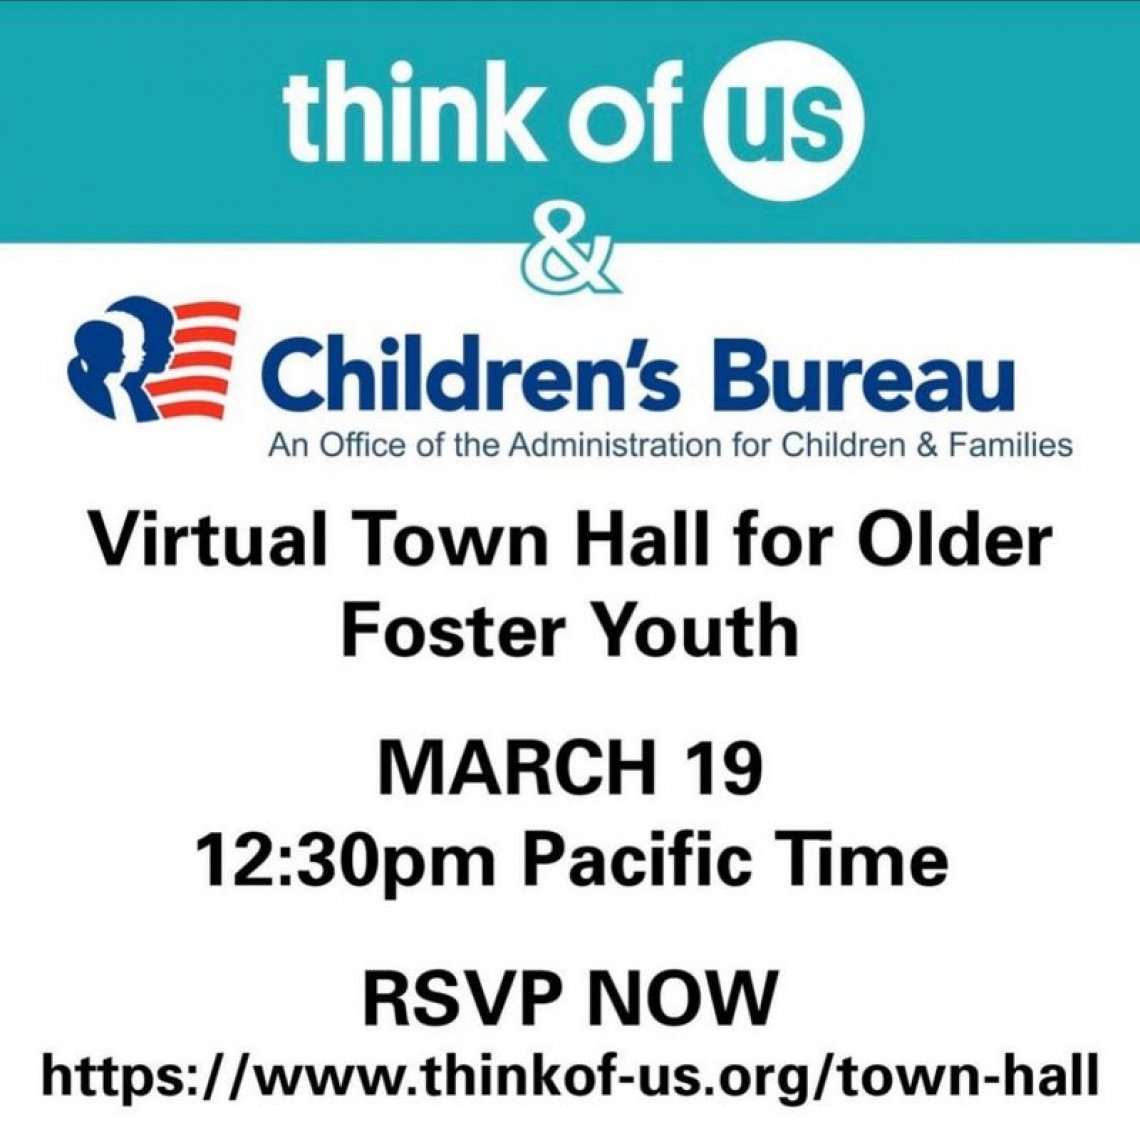 Children's Bureau Think of Us Older Youth Town Hall